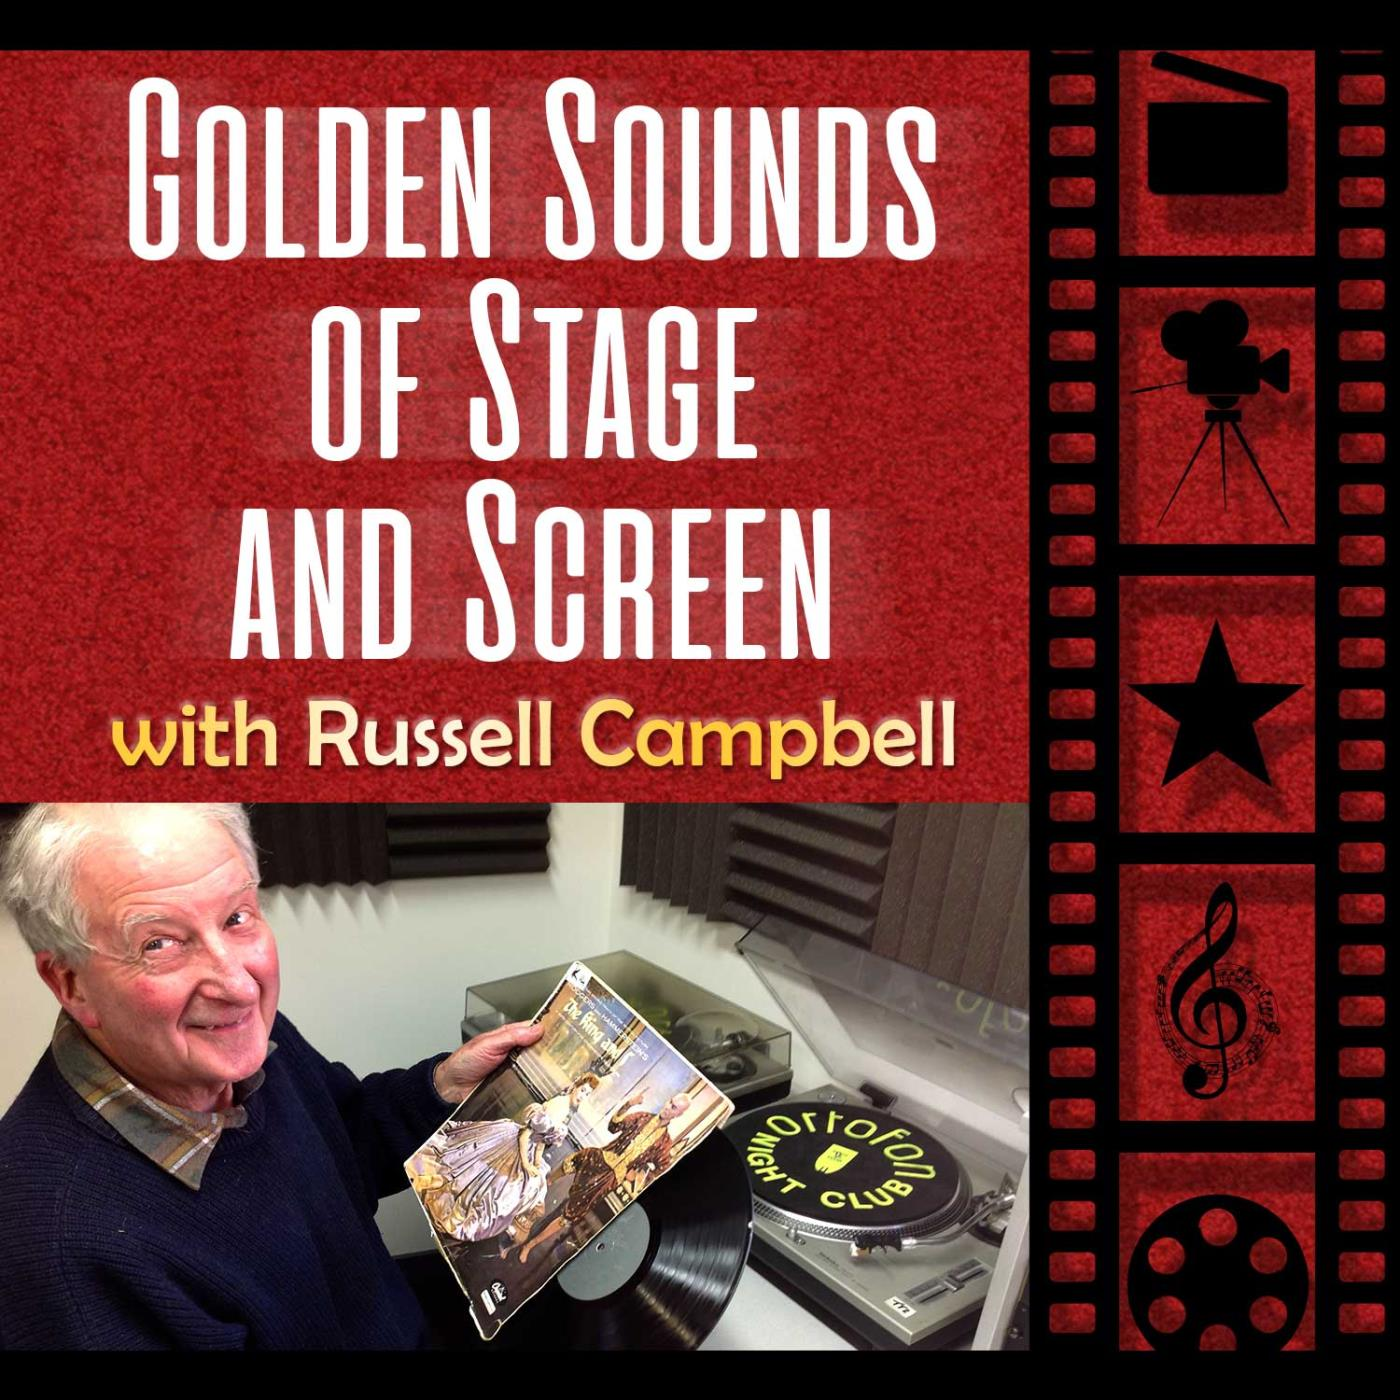 Golden Sounds of Stage and Screen - 19-10-2020 - My Fair Lady, Gigi and Calamity Jane